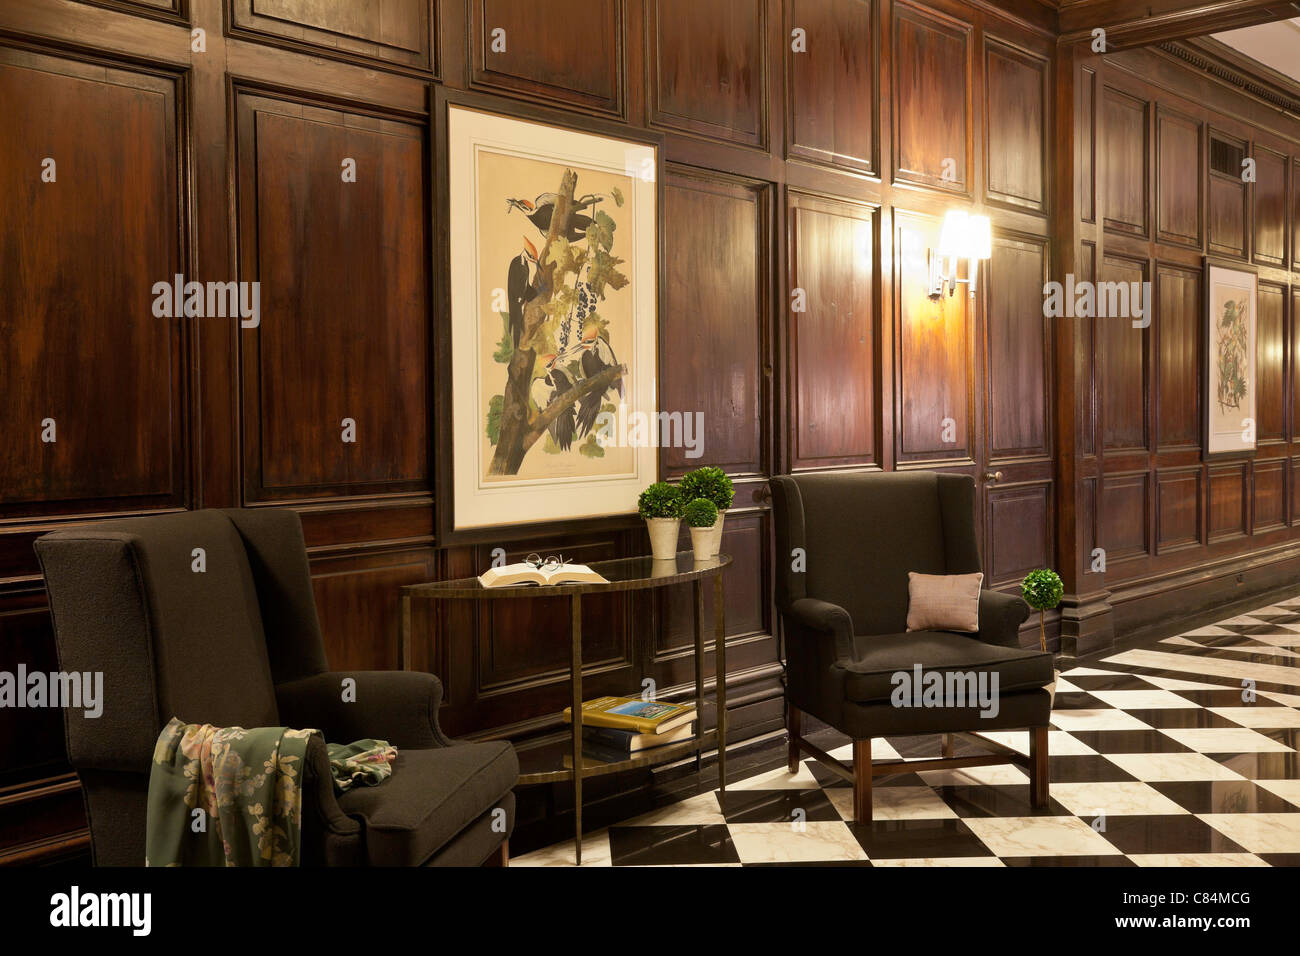 wood paneled vintage hotel lobby interior with john james audubon stock photo royalty free. Black Bedroom Furniture Sets. Home Design Ideas